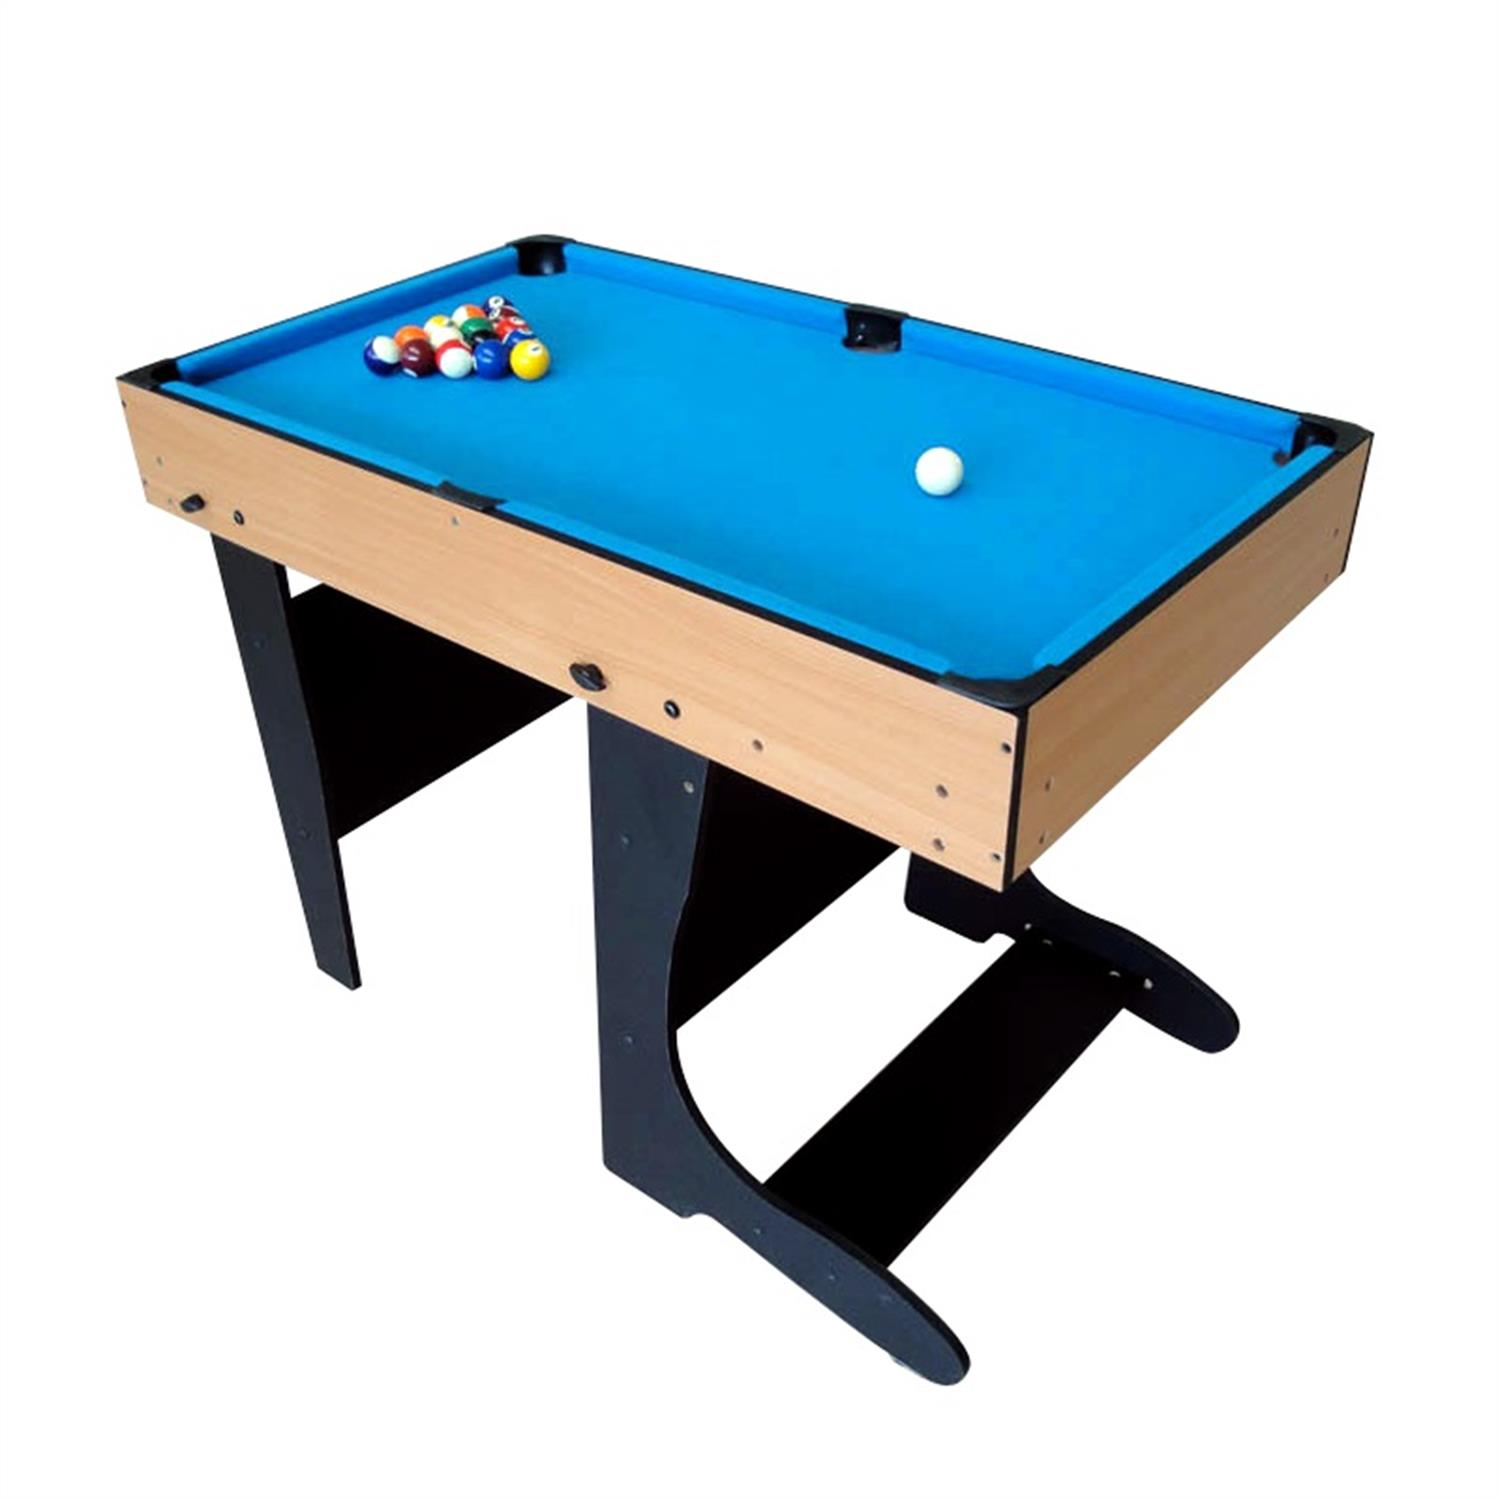 Riley 4 in 1 game table foldable 12 games air hockey for 10 in 1 table game